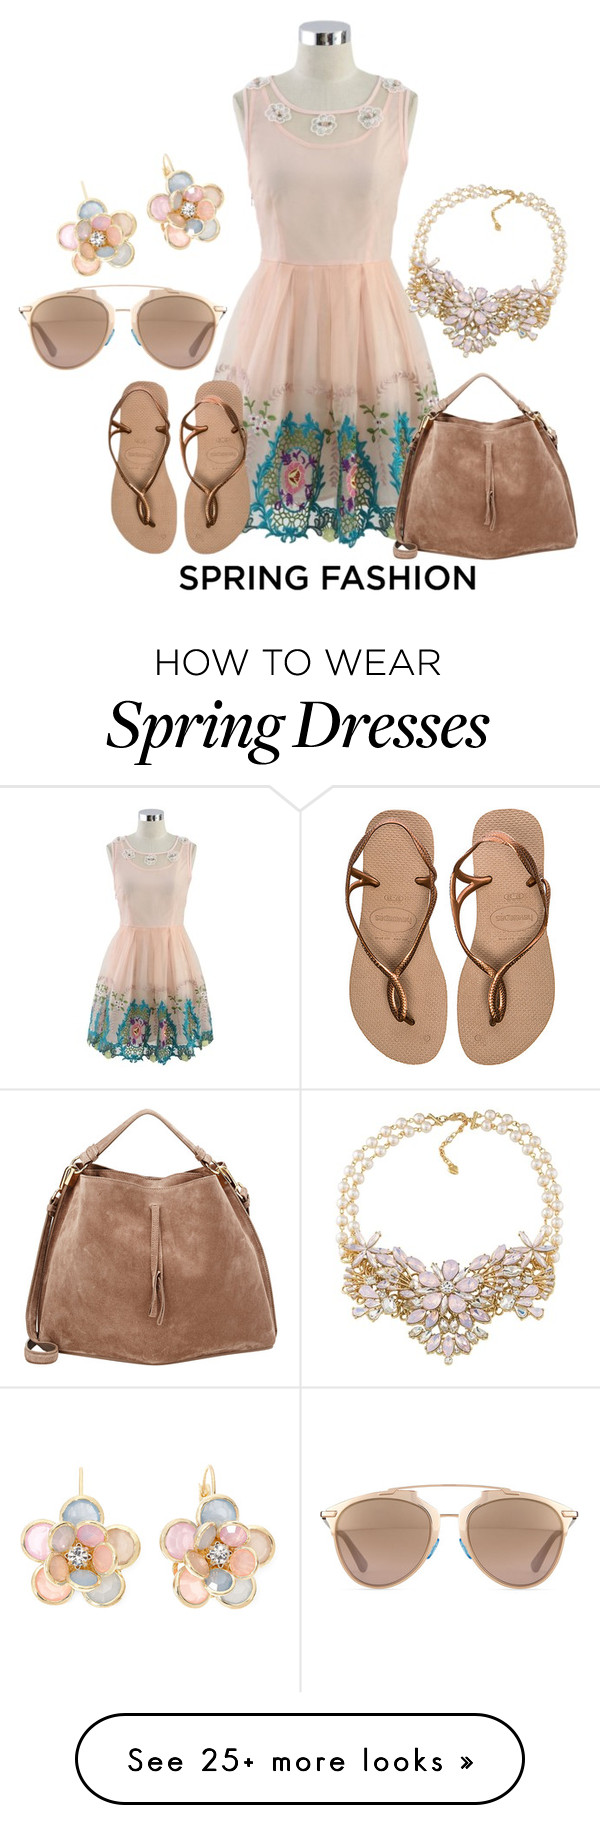 """Spring Fashion"" by pollypocket-erm on Polyvore featuring moda, Chicwish, Havaianas, Mixit, Carolee, Maison Margiela, Christian Dior, women's clothing, women e female"